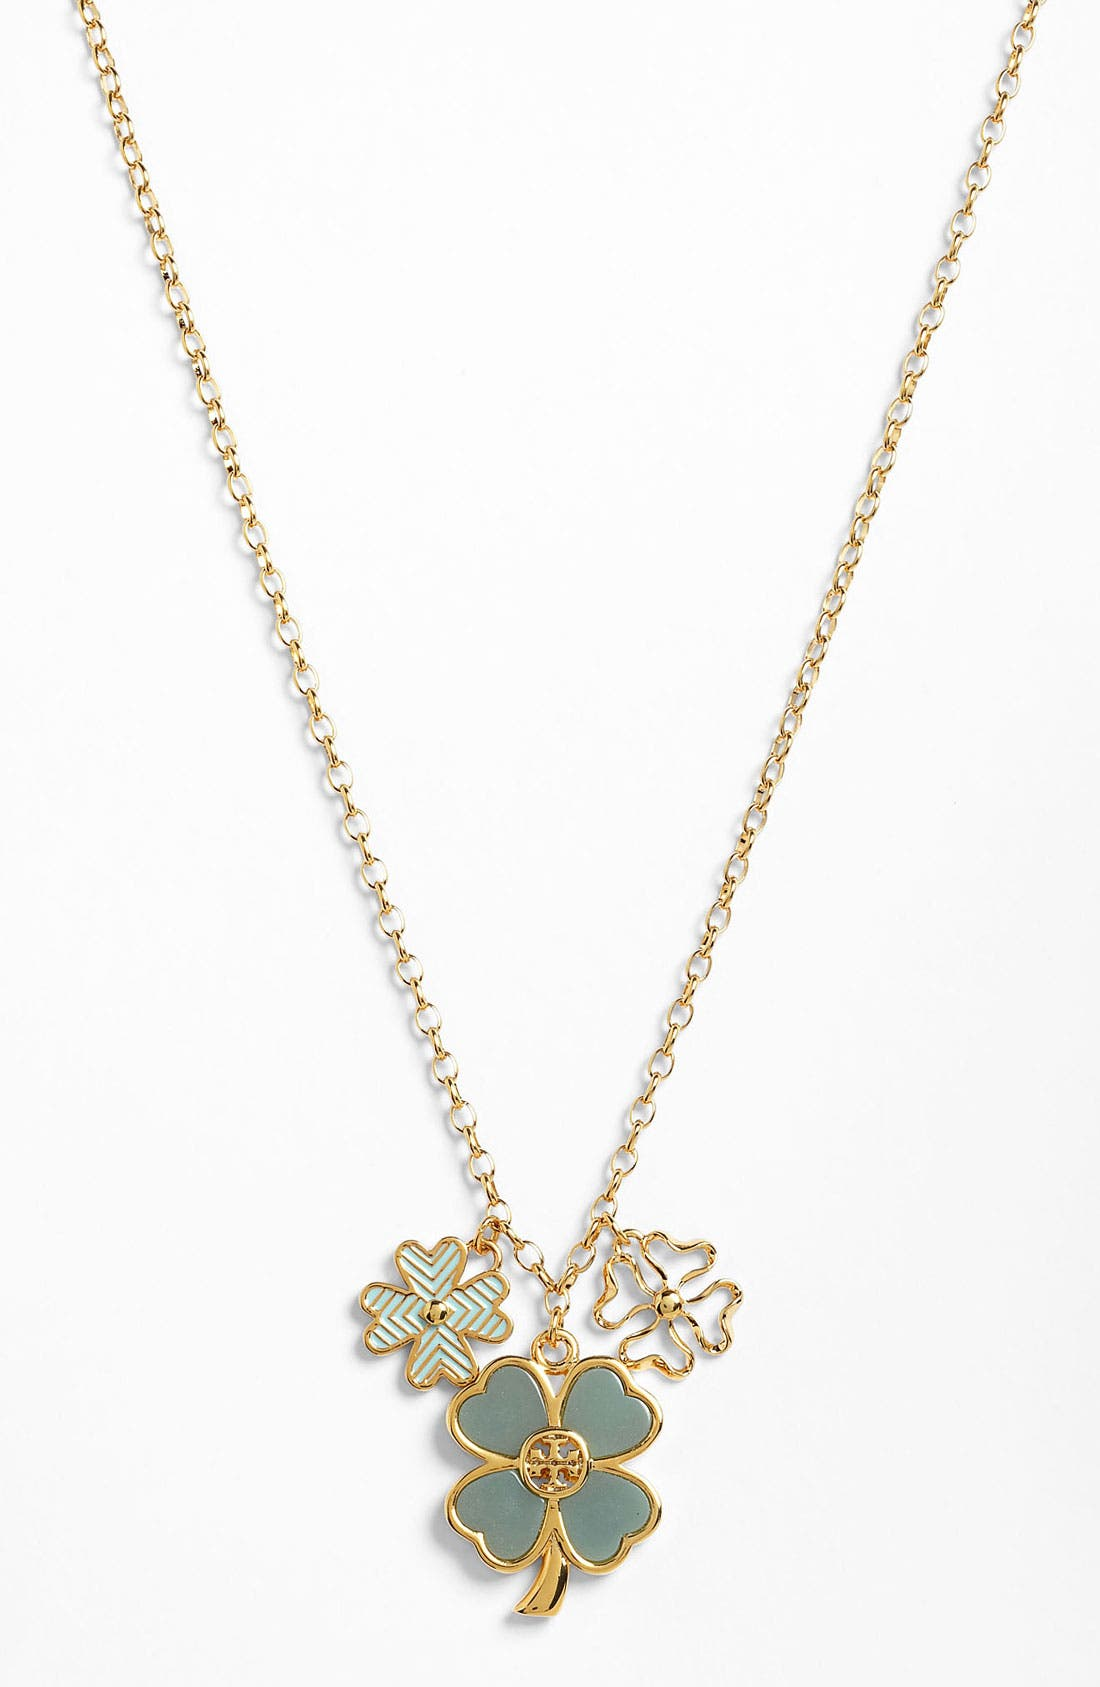 Main Image - Tory Burch 'Shawn' Long Pendant Necklace